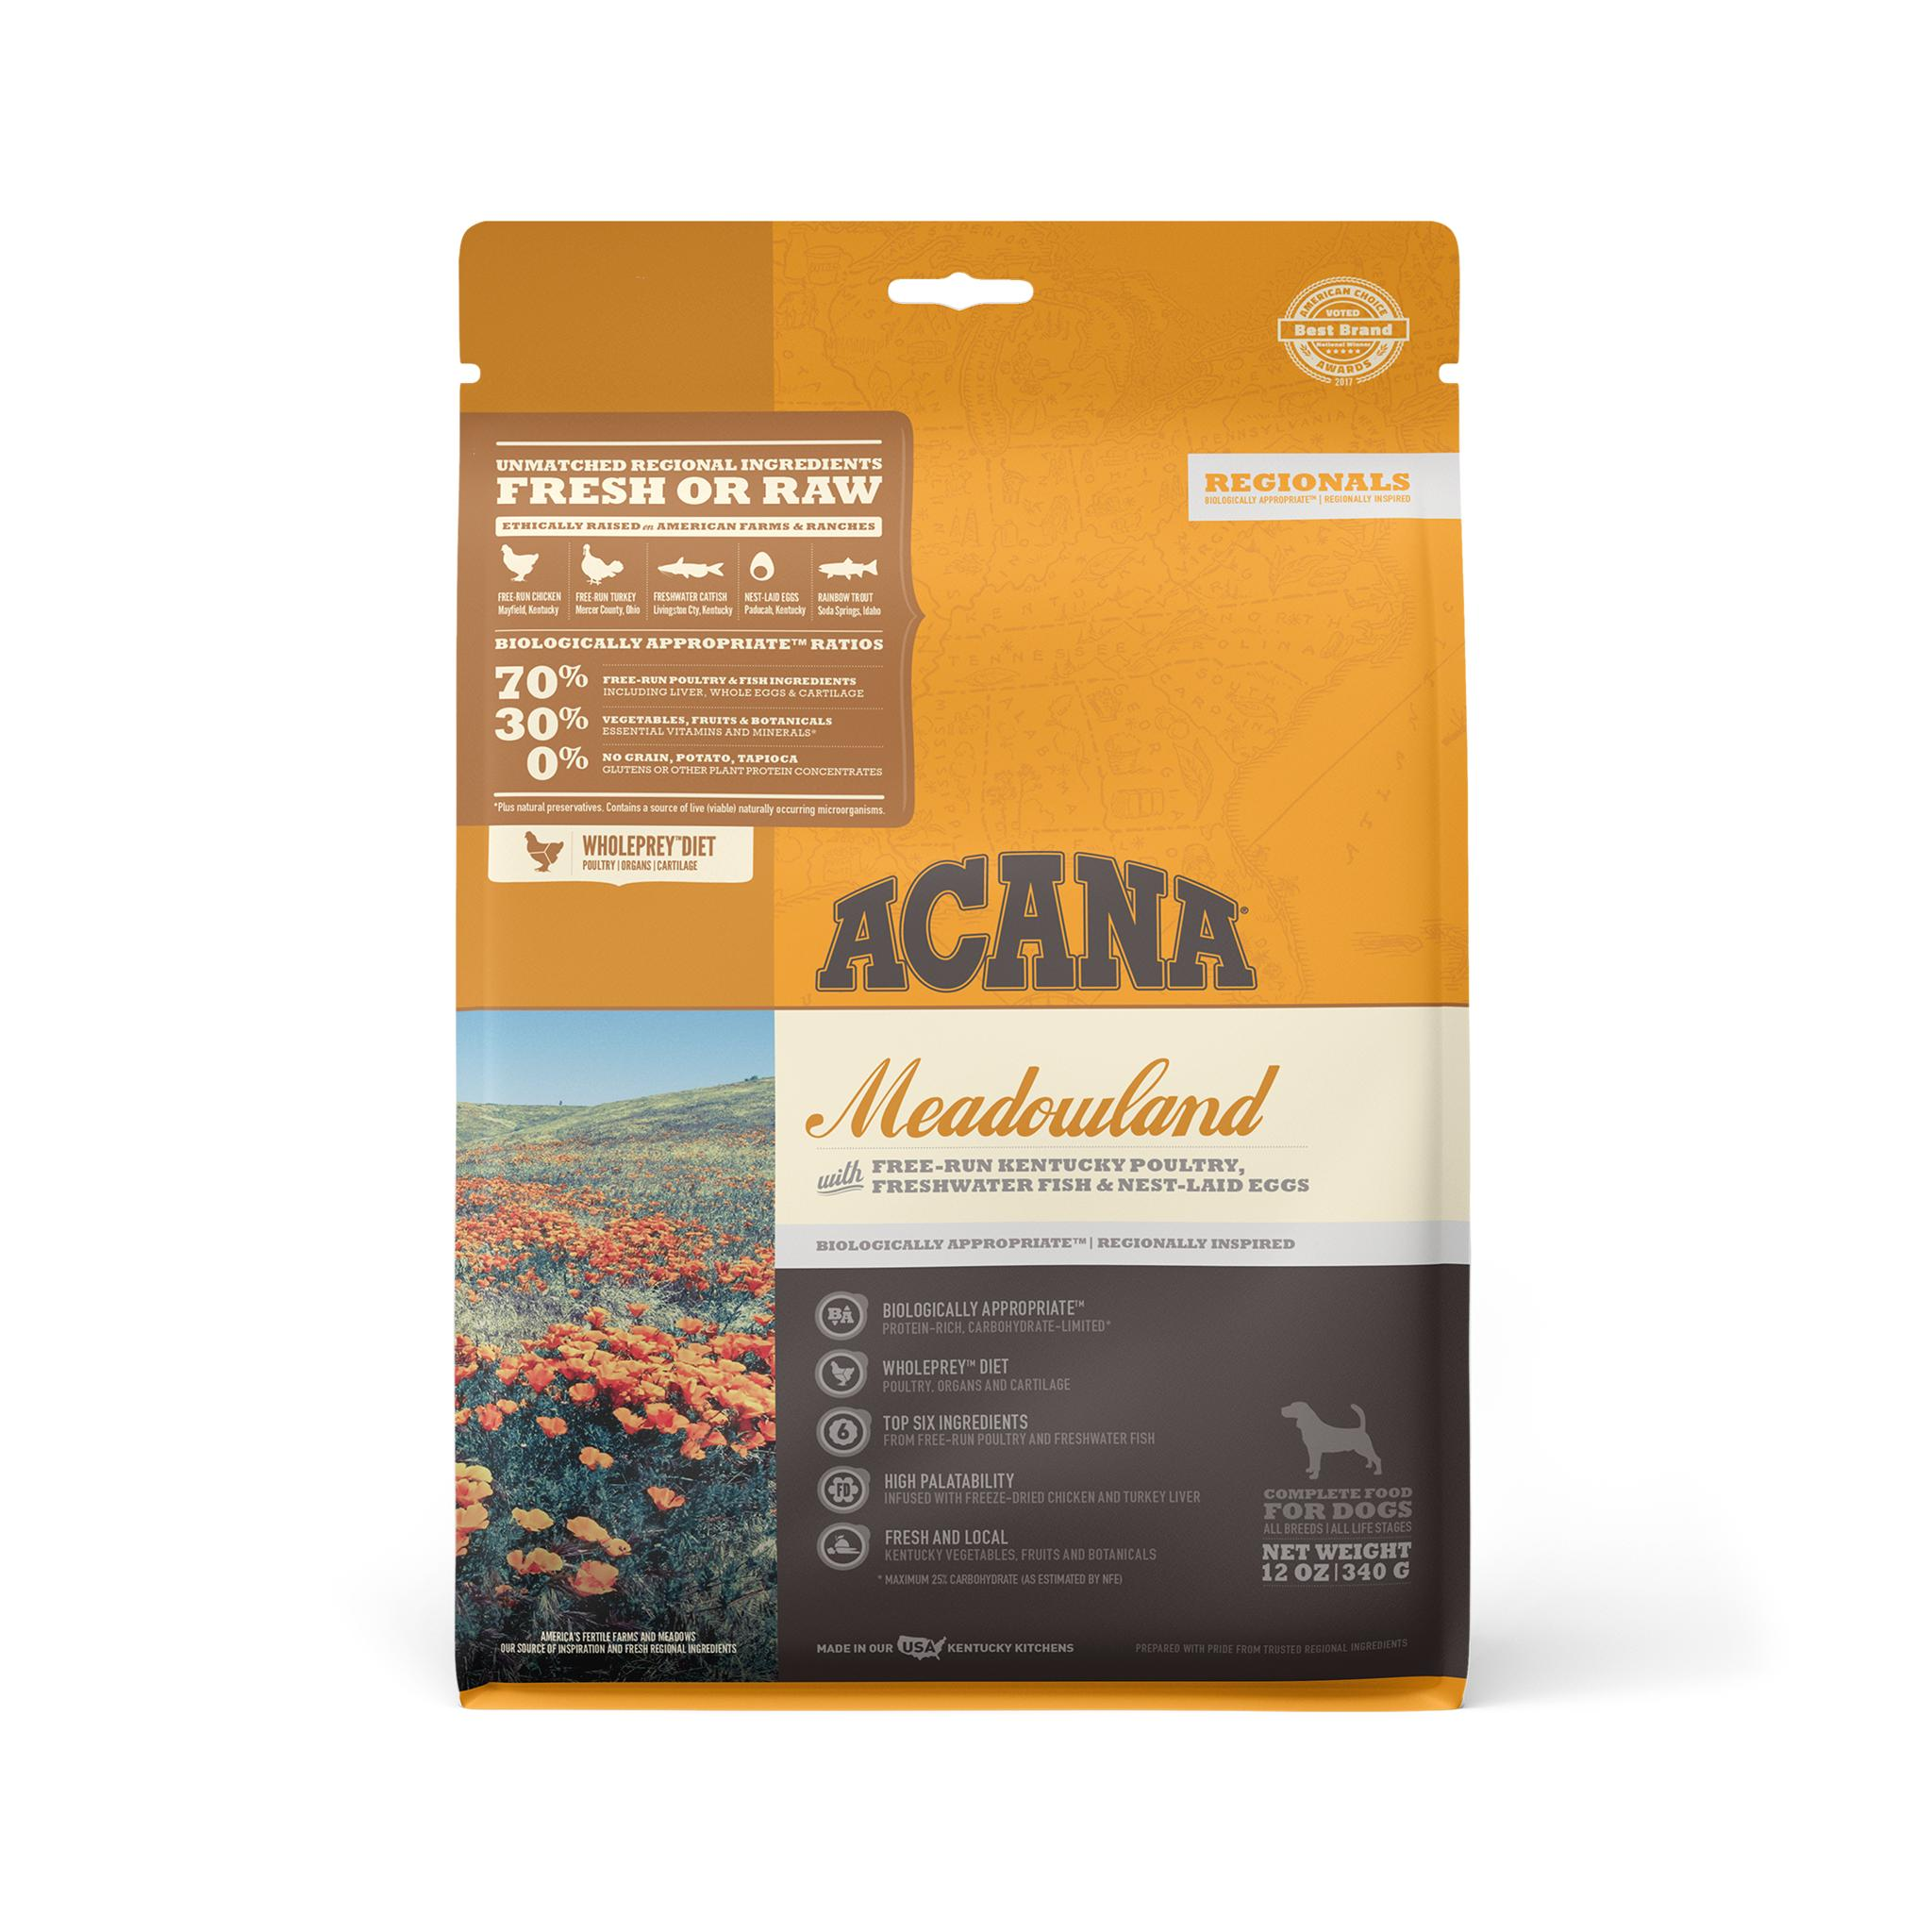 ACANA Regionals Meadowland Grain-Free Dry Dog Food Image